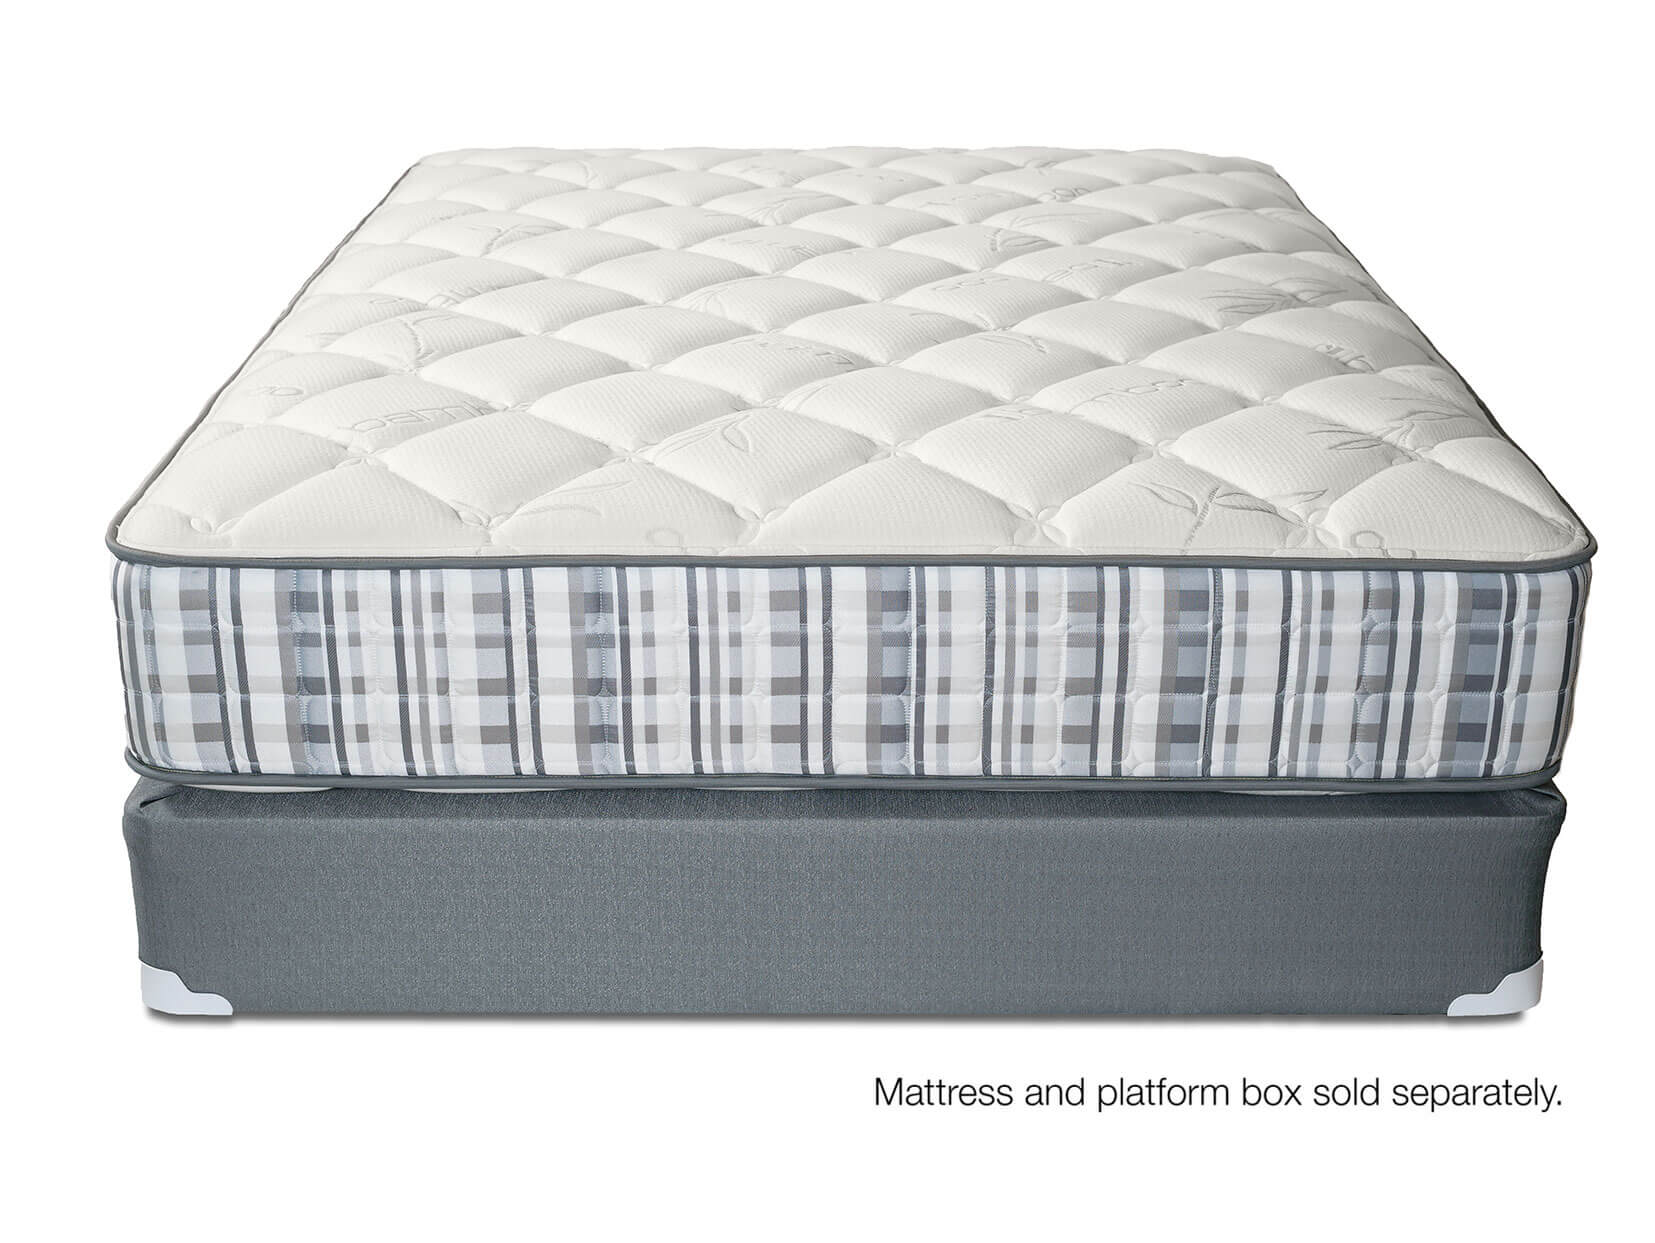 Discovery Plush Innerspring Mattress Front View